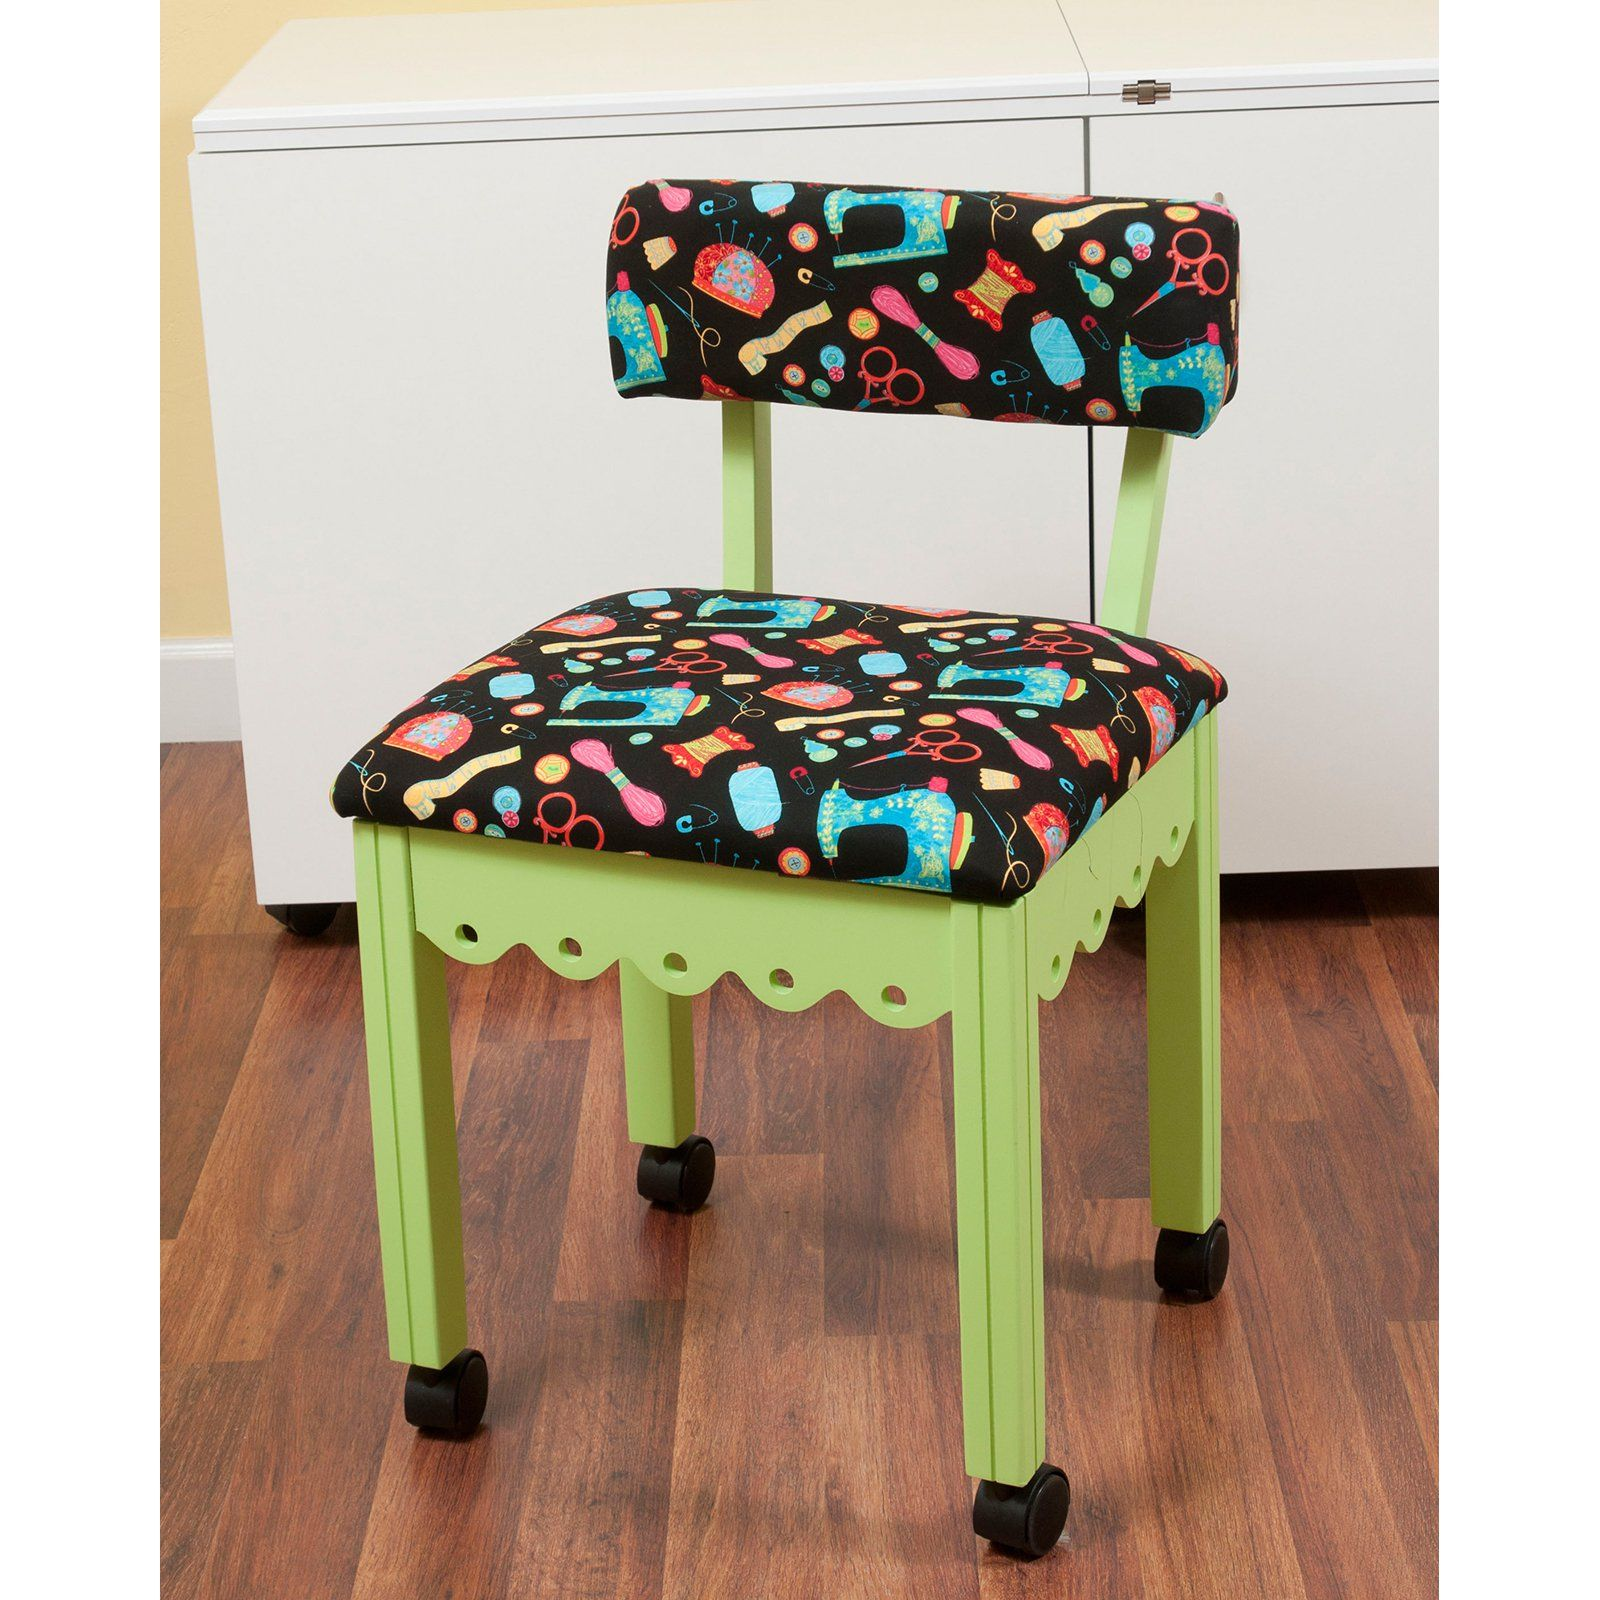 Sensational Arrow Sewing Print Material Sewing Chair With Scalloped Base Theyellowbook Wood Chair Design Ideas Theyellowbookinfo